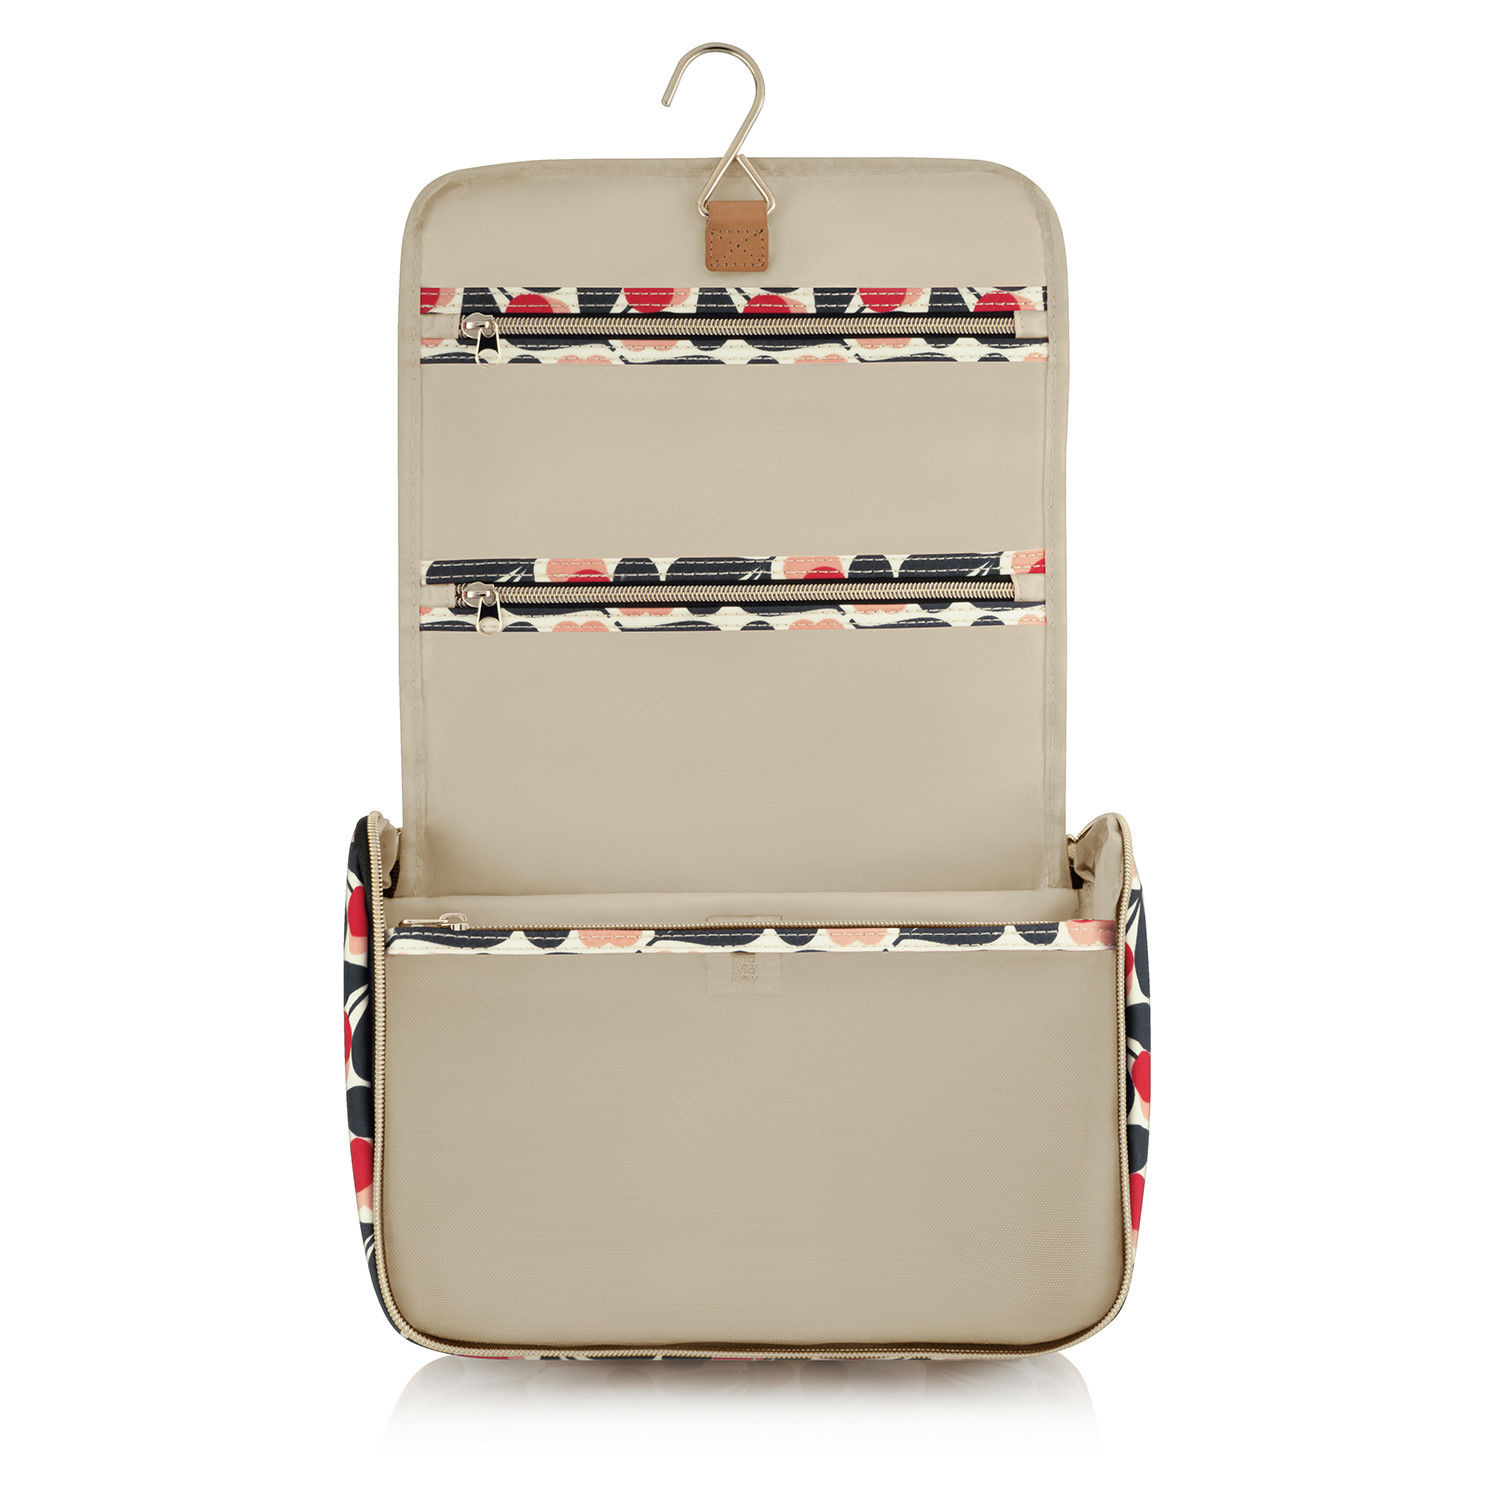 Orla Kiely – Sycamore Seed Collection Large Hanging Toiletry/Washbag